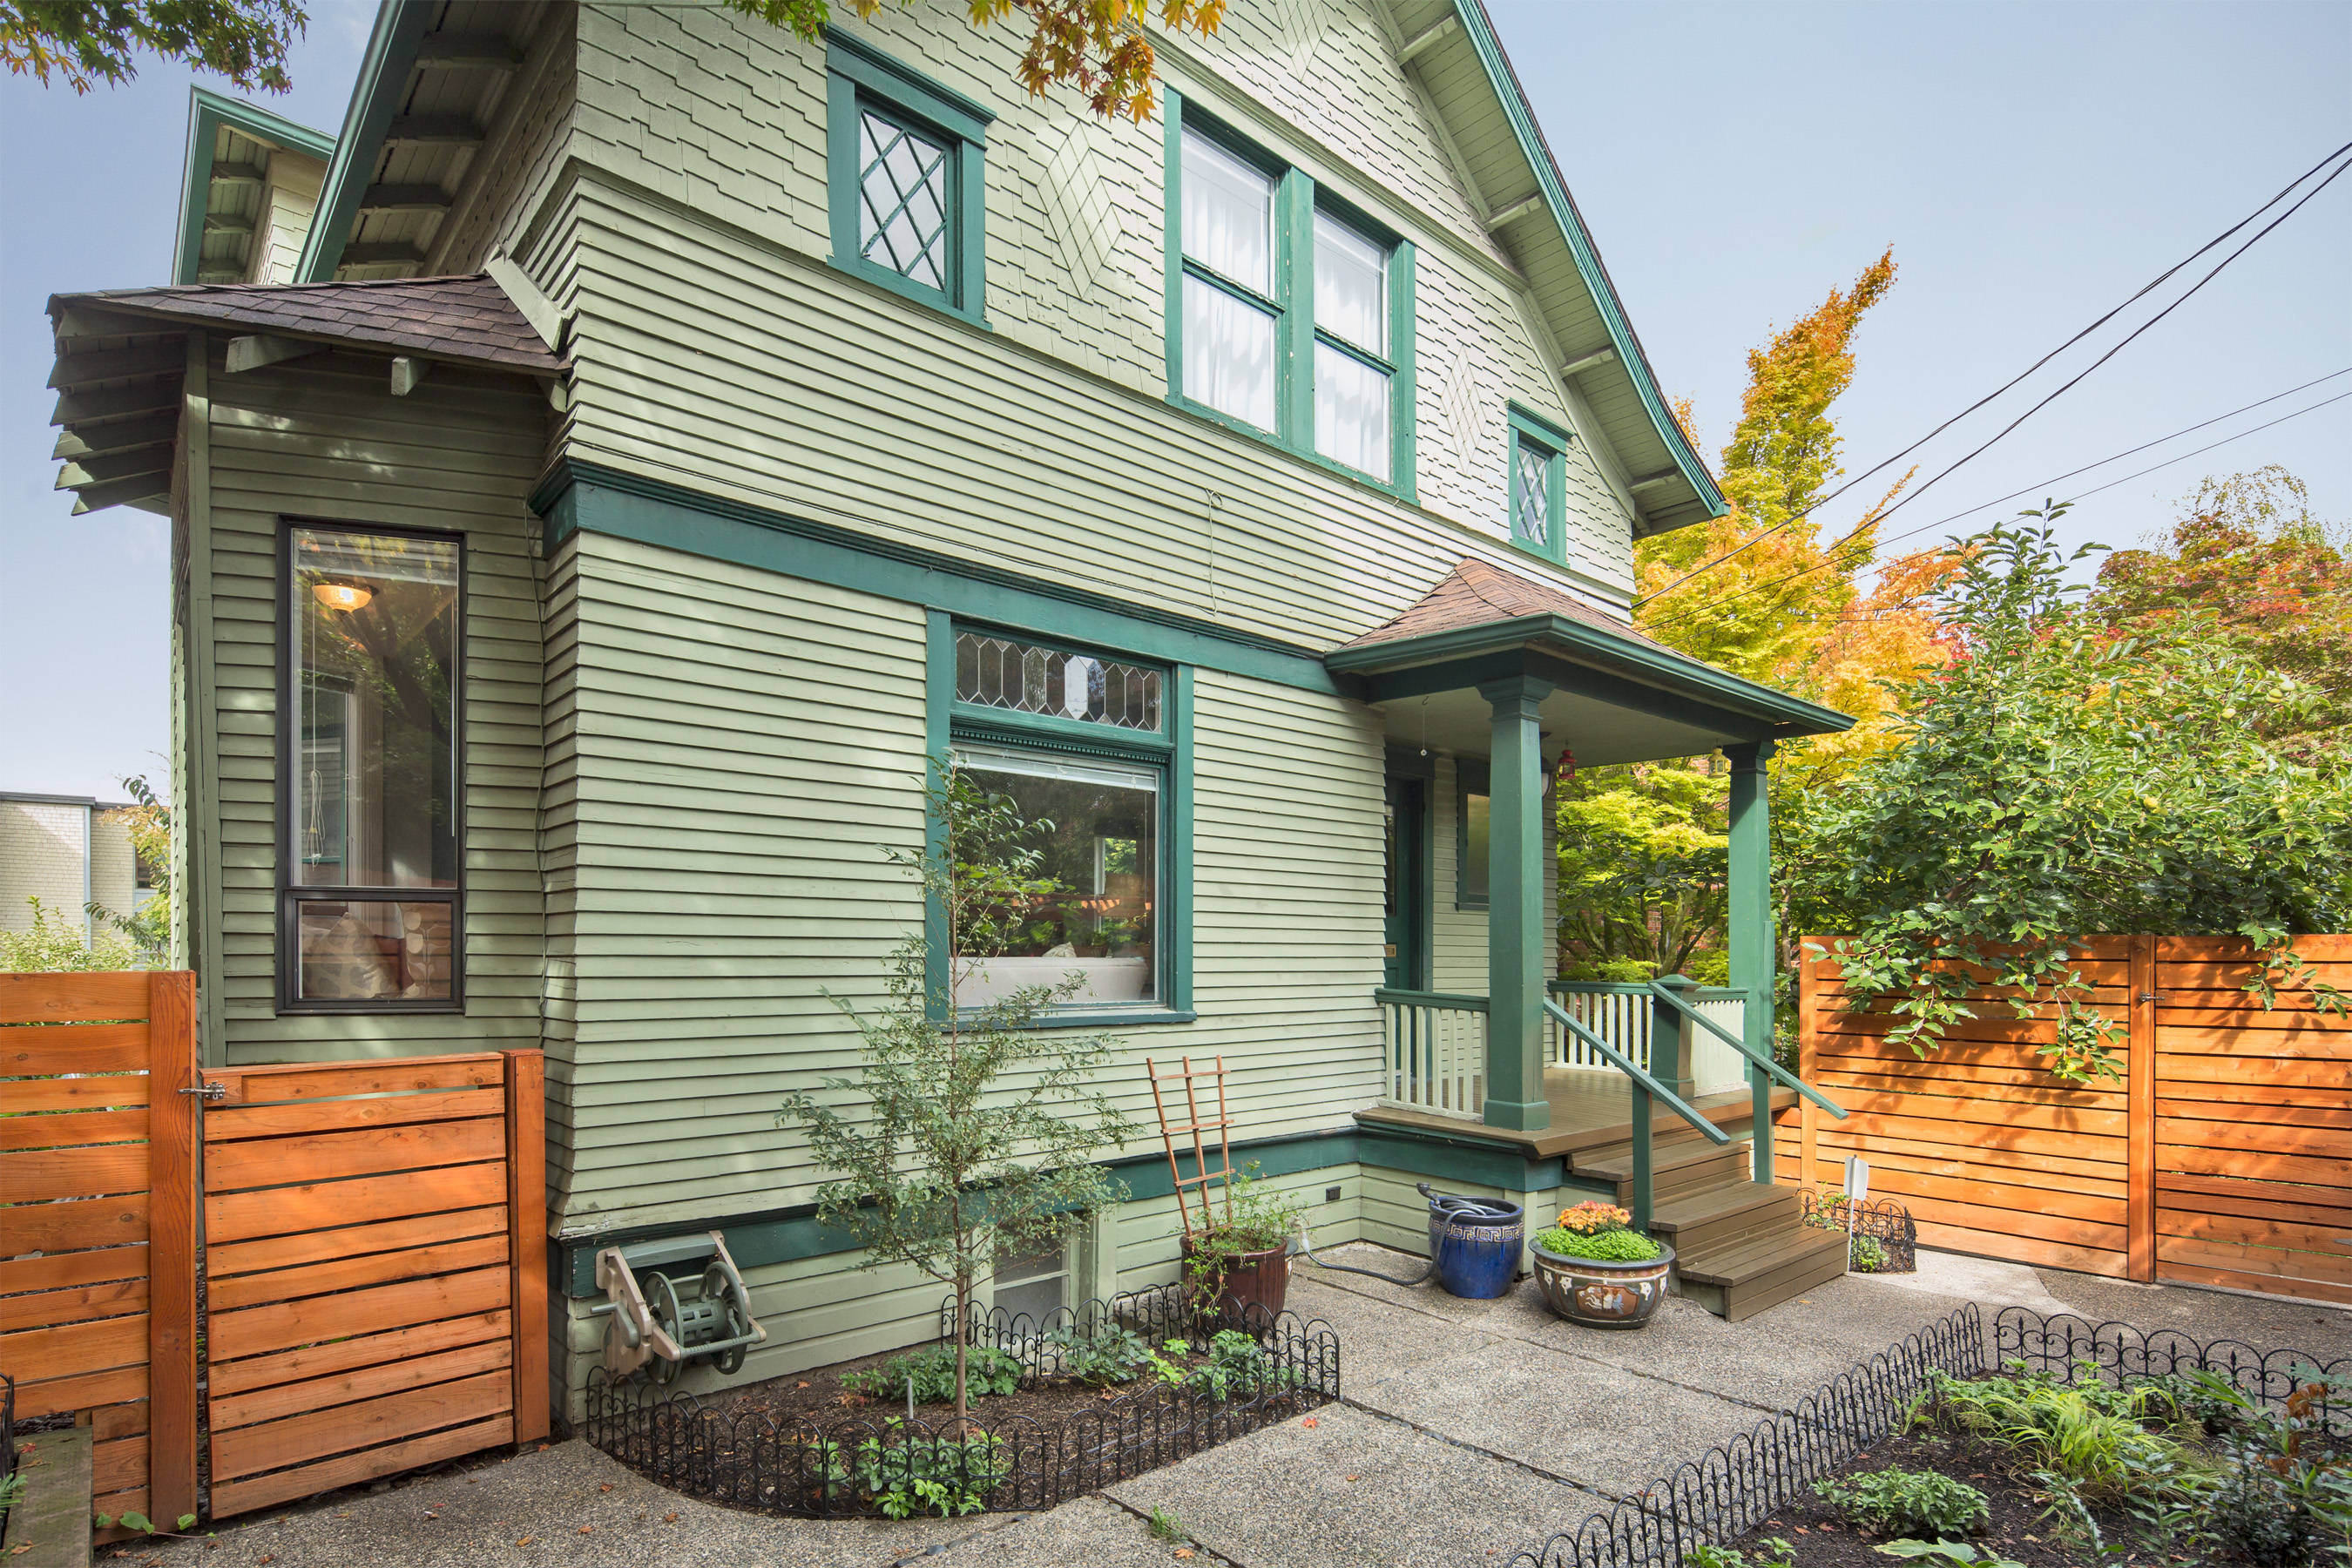 Single Family Home for Sale at Capitol Hill Victorian 2015 10th Ave E Seattle, Washington 98102 United States